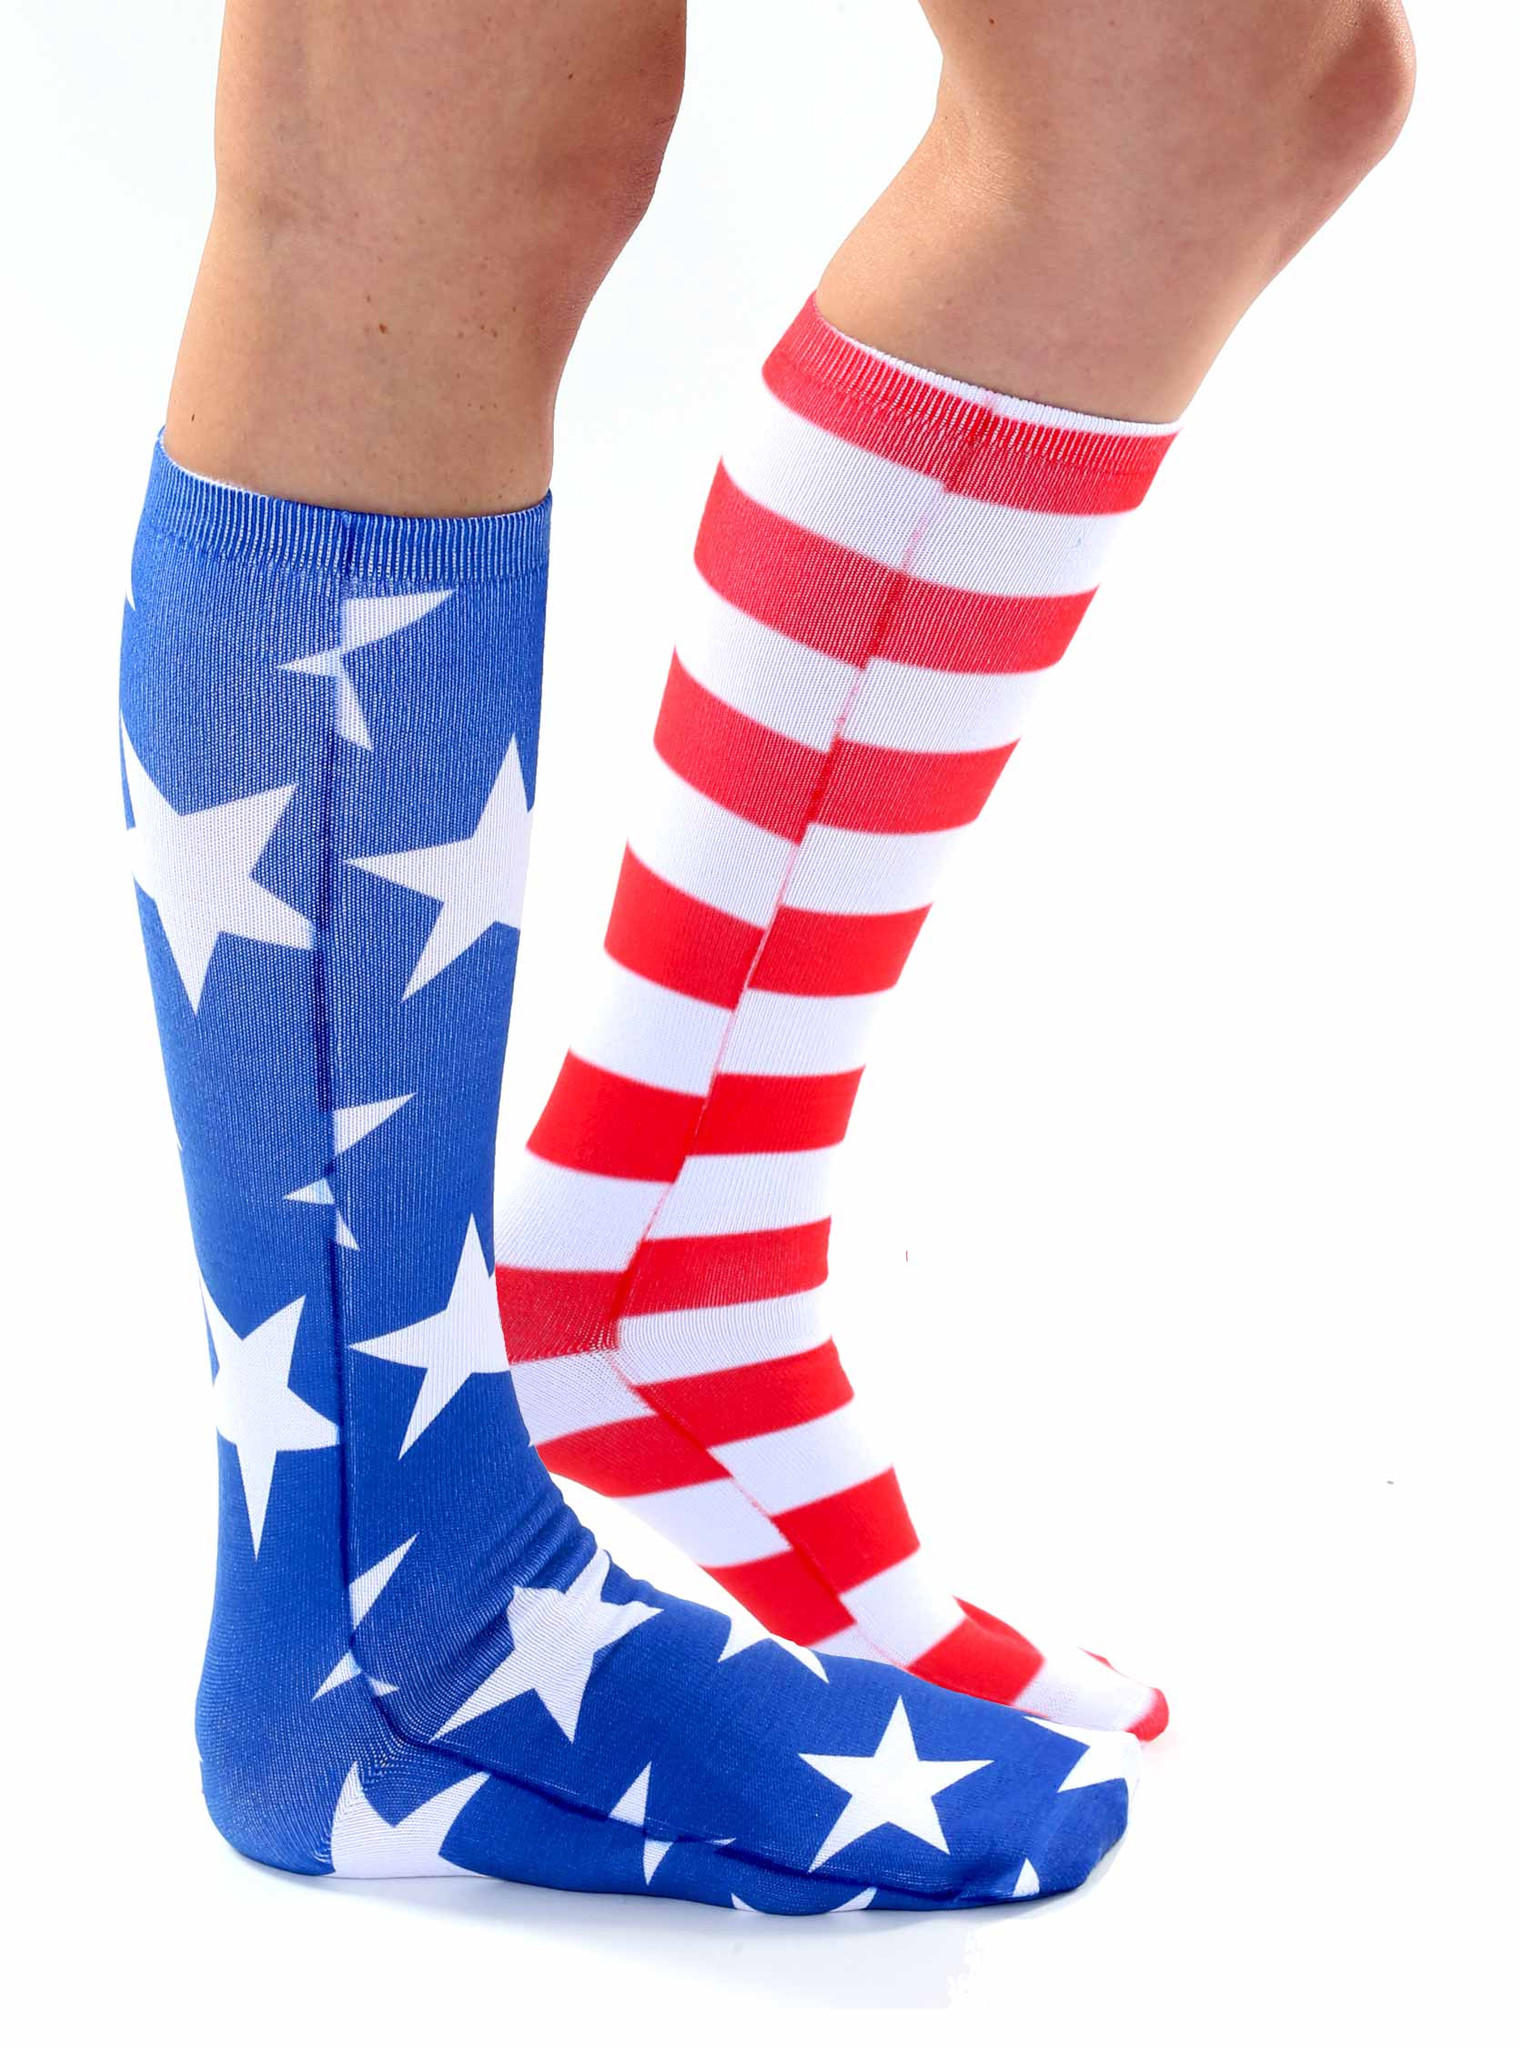 404a2a4441c Stars and Stripes Knee High Socks from Living Royal